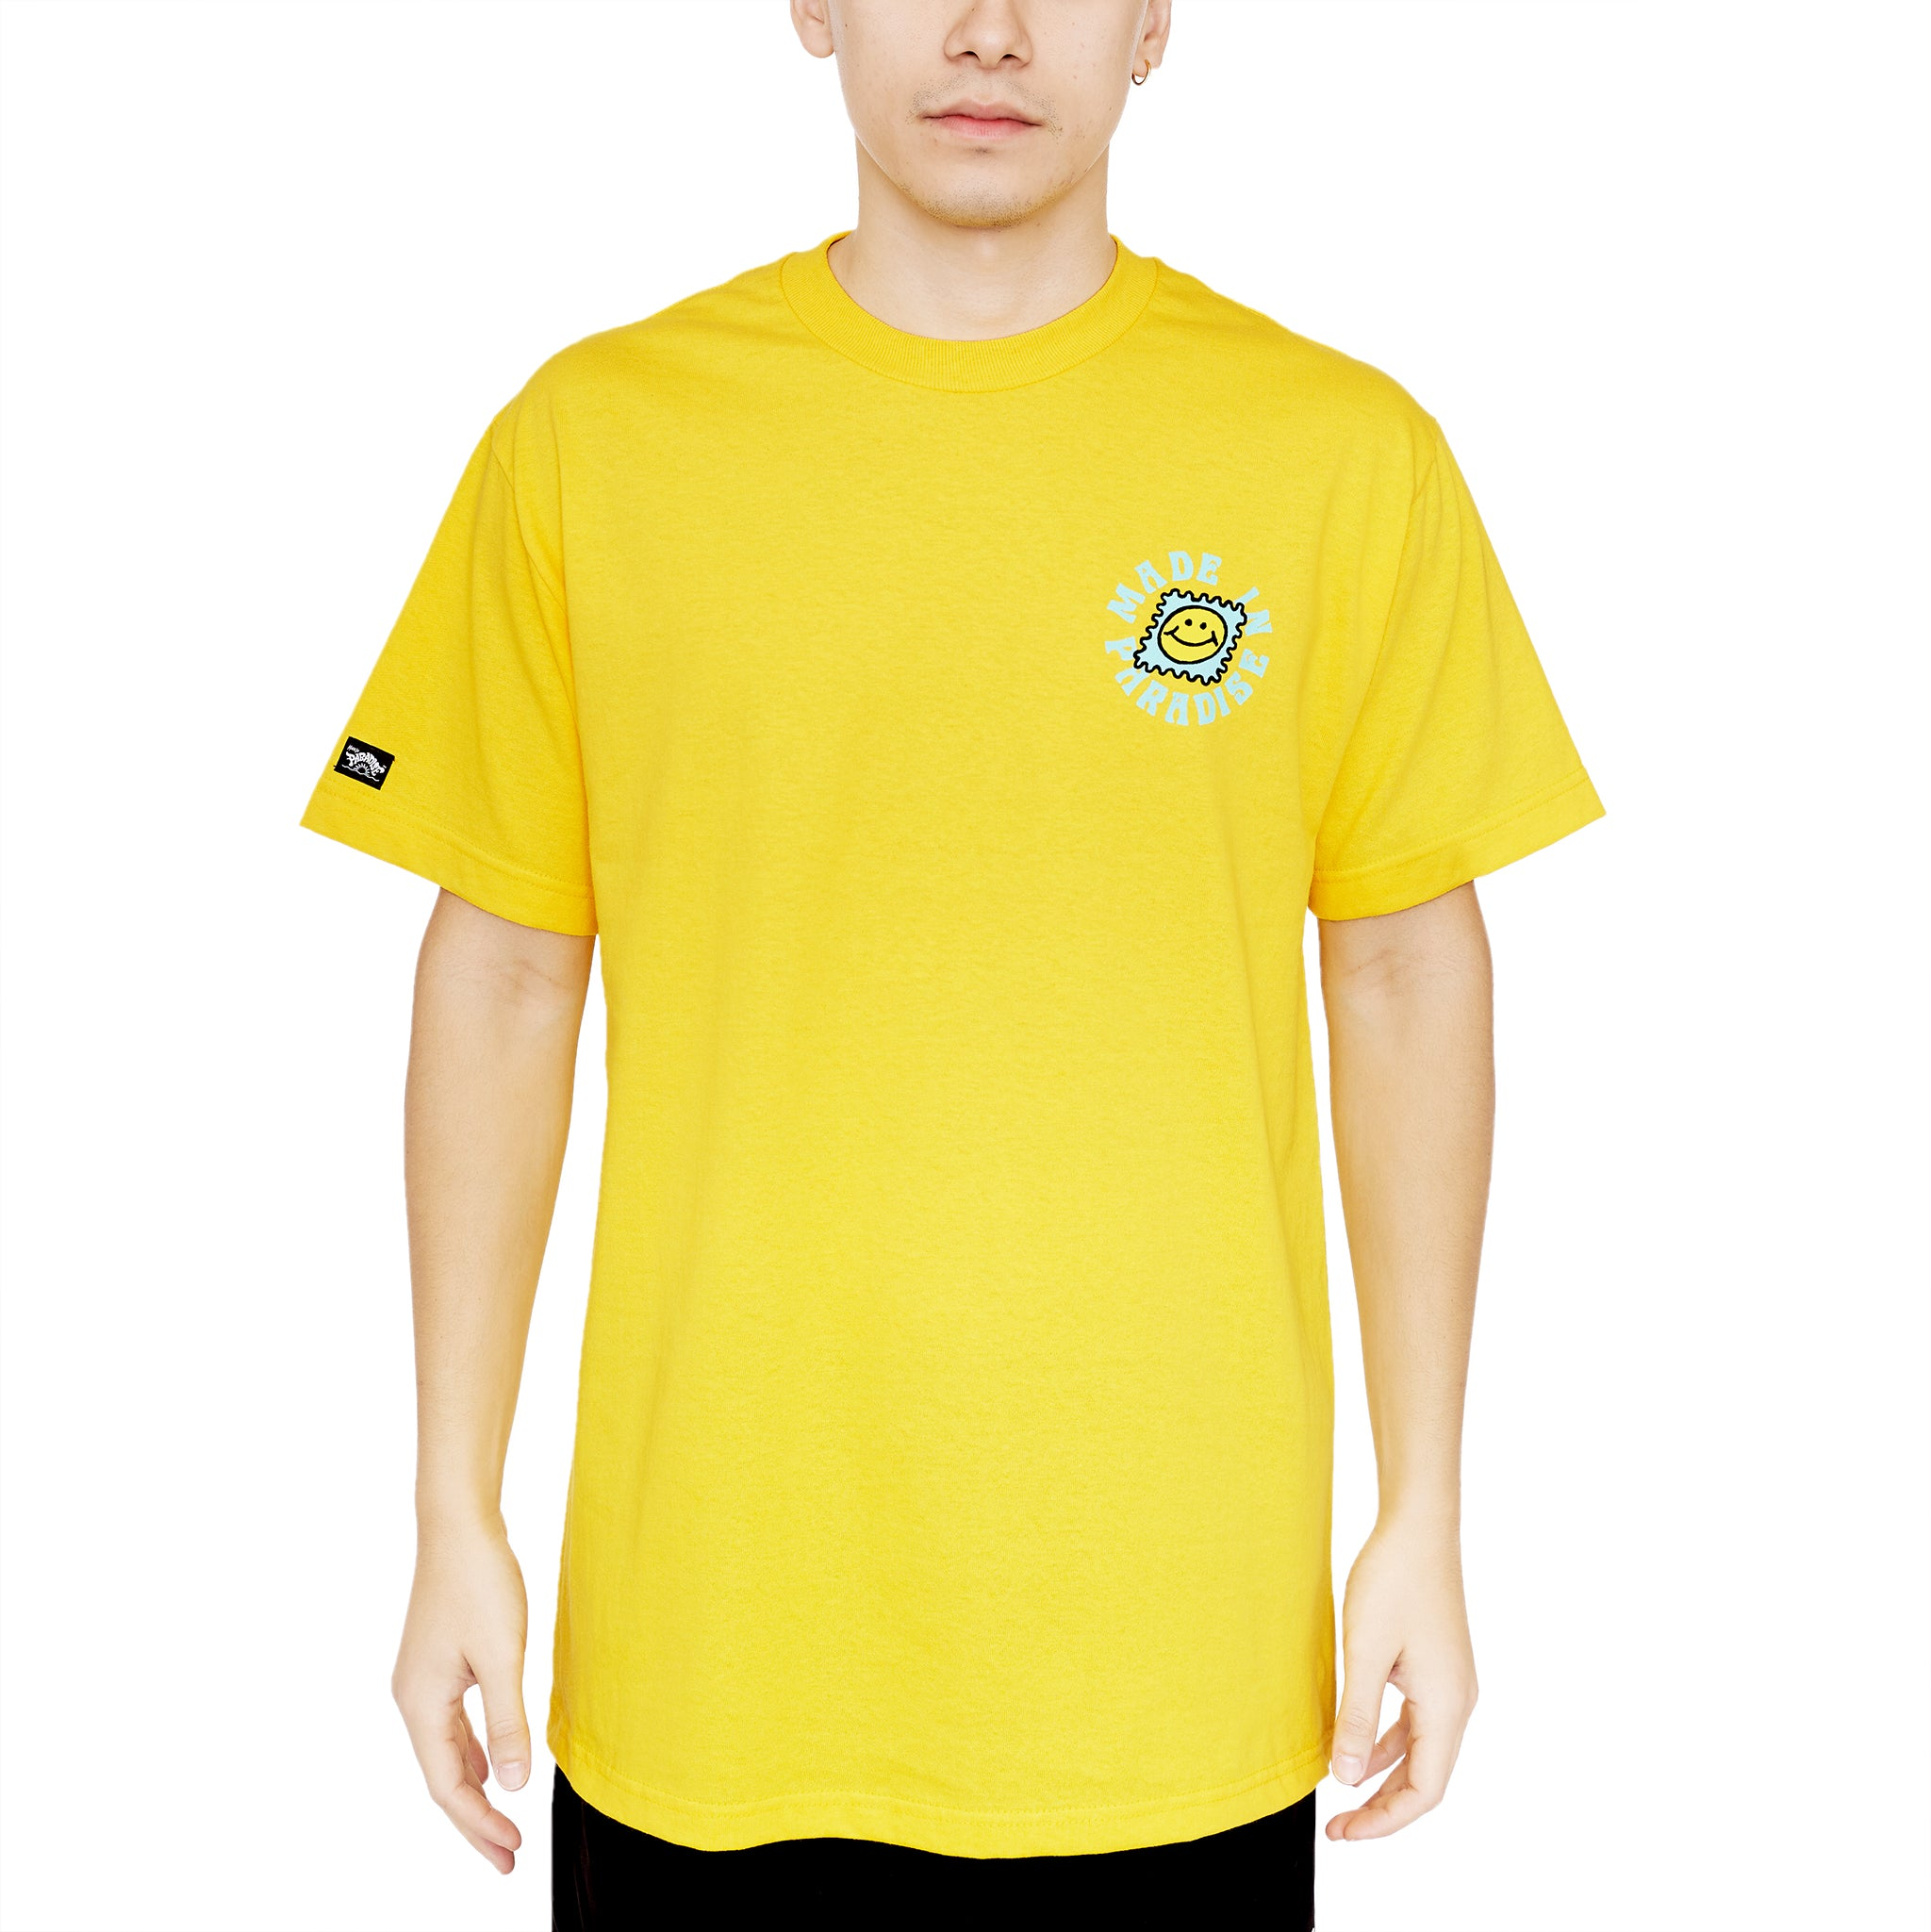 TASTE THE SUNSHINE TEE - YELLOW